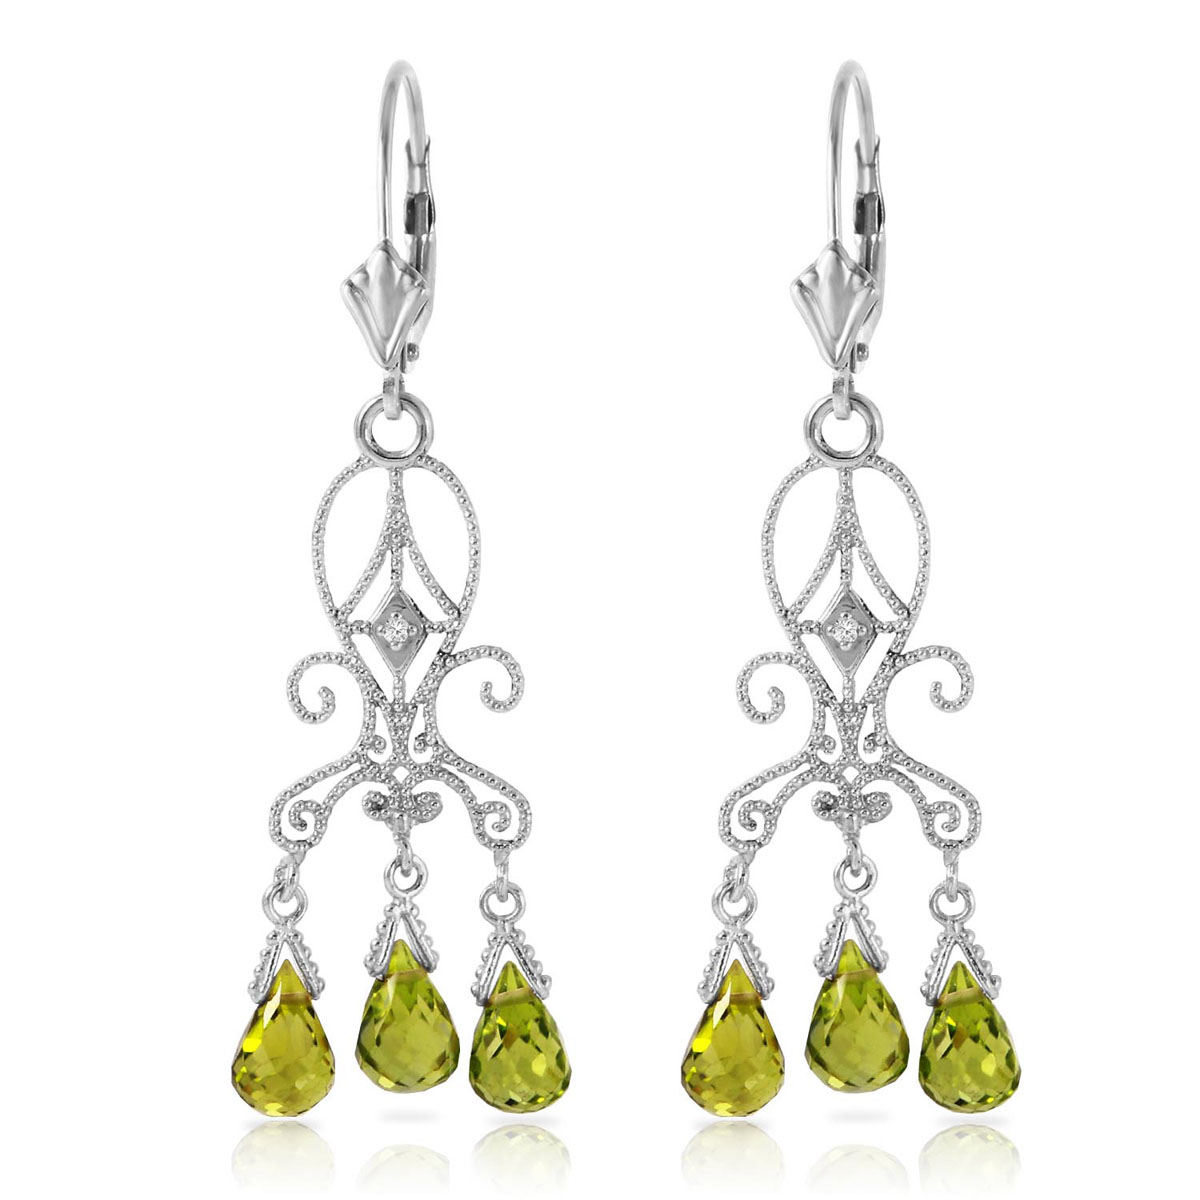 Peridot Baroque Drop Earrings 4.51 ctw in 9ct White Gold